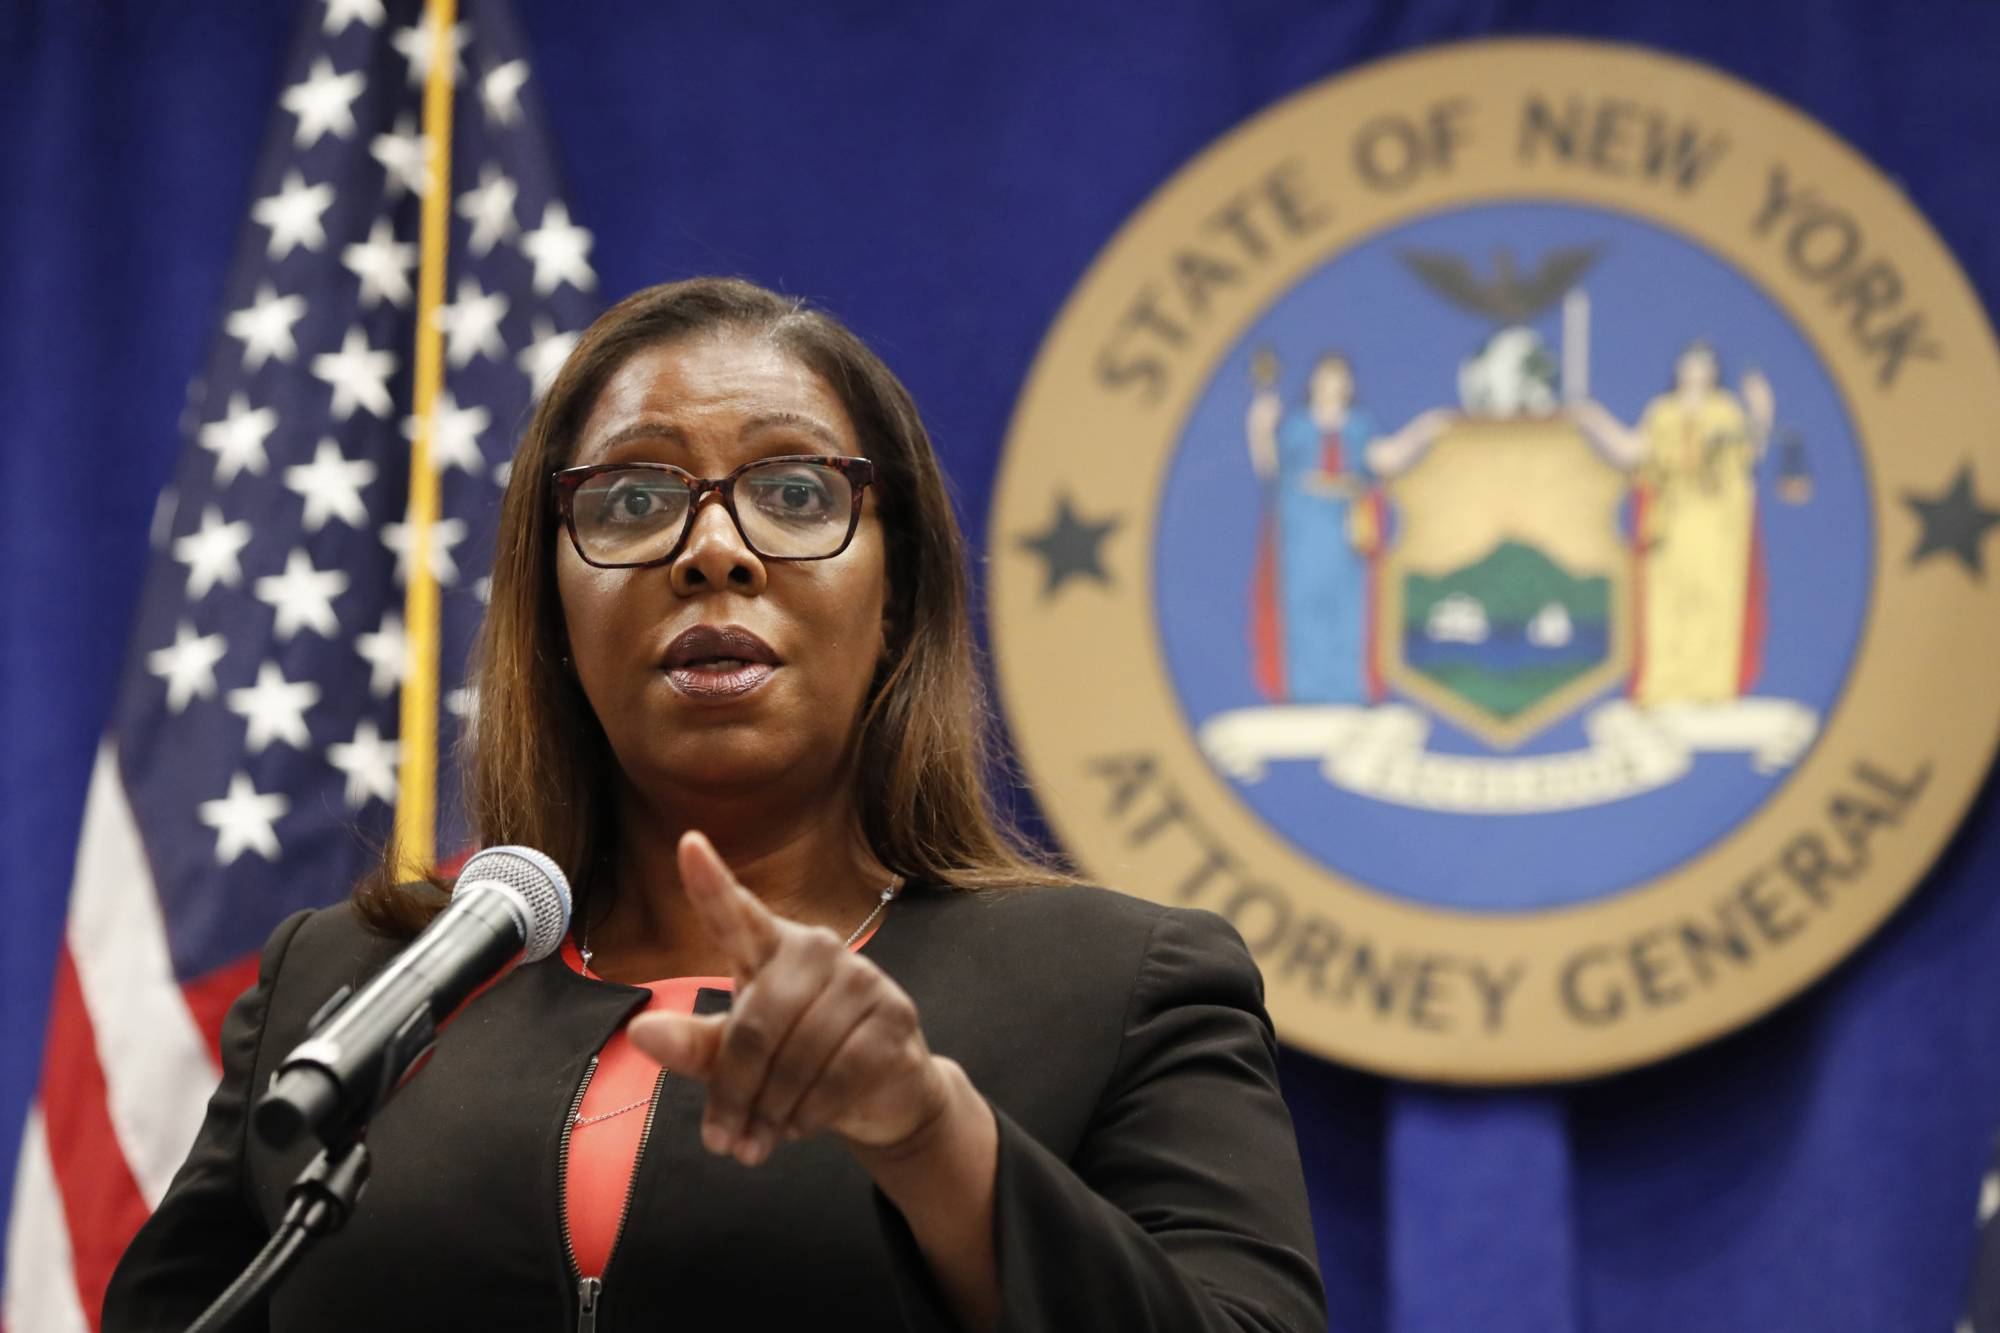 |  FILE- IN THIS AUG. 6, 2020 FILE PHOTO, NEW YORK STATE ATTORNEY GENERAL LETITIA JAMES TAKES A QUESTION AT A NEWS CONFERENCE IN NEW YORK. FEDERAL REGULATORS AND A GROUP OF STATES LAUNCHED A LANDMARK ANTITRUST OFFENSIVE AGAINST FACEBOOK, ACCUSING THE SOCIAL NETWORK OF ABUSING ITS MARKET POWER IN SOCIAL NETWORKING TO CRUSH SMALLER COMPETITORS.